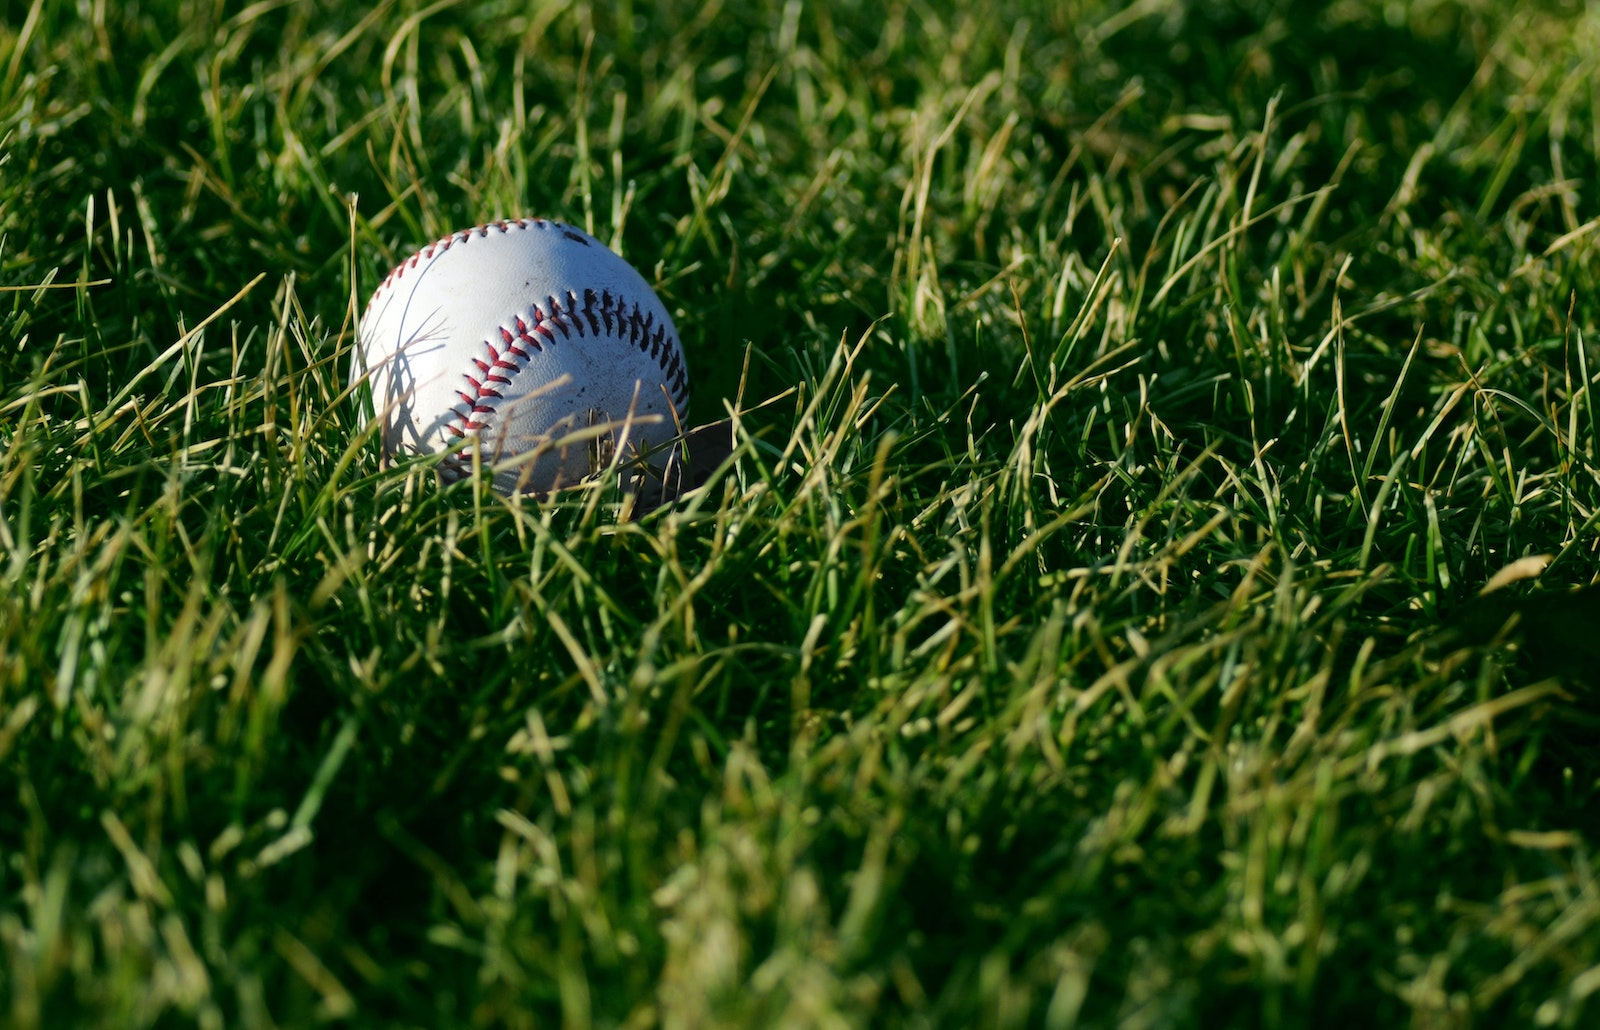 The Field of Dreams Fallacy